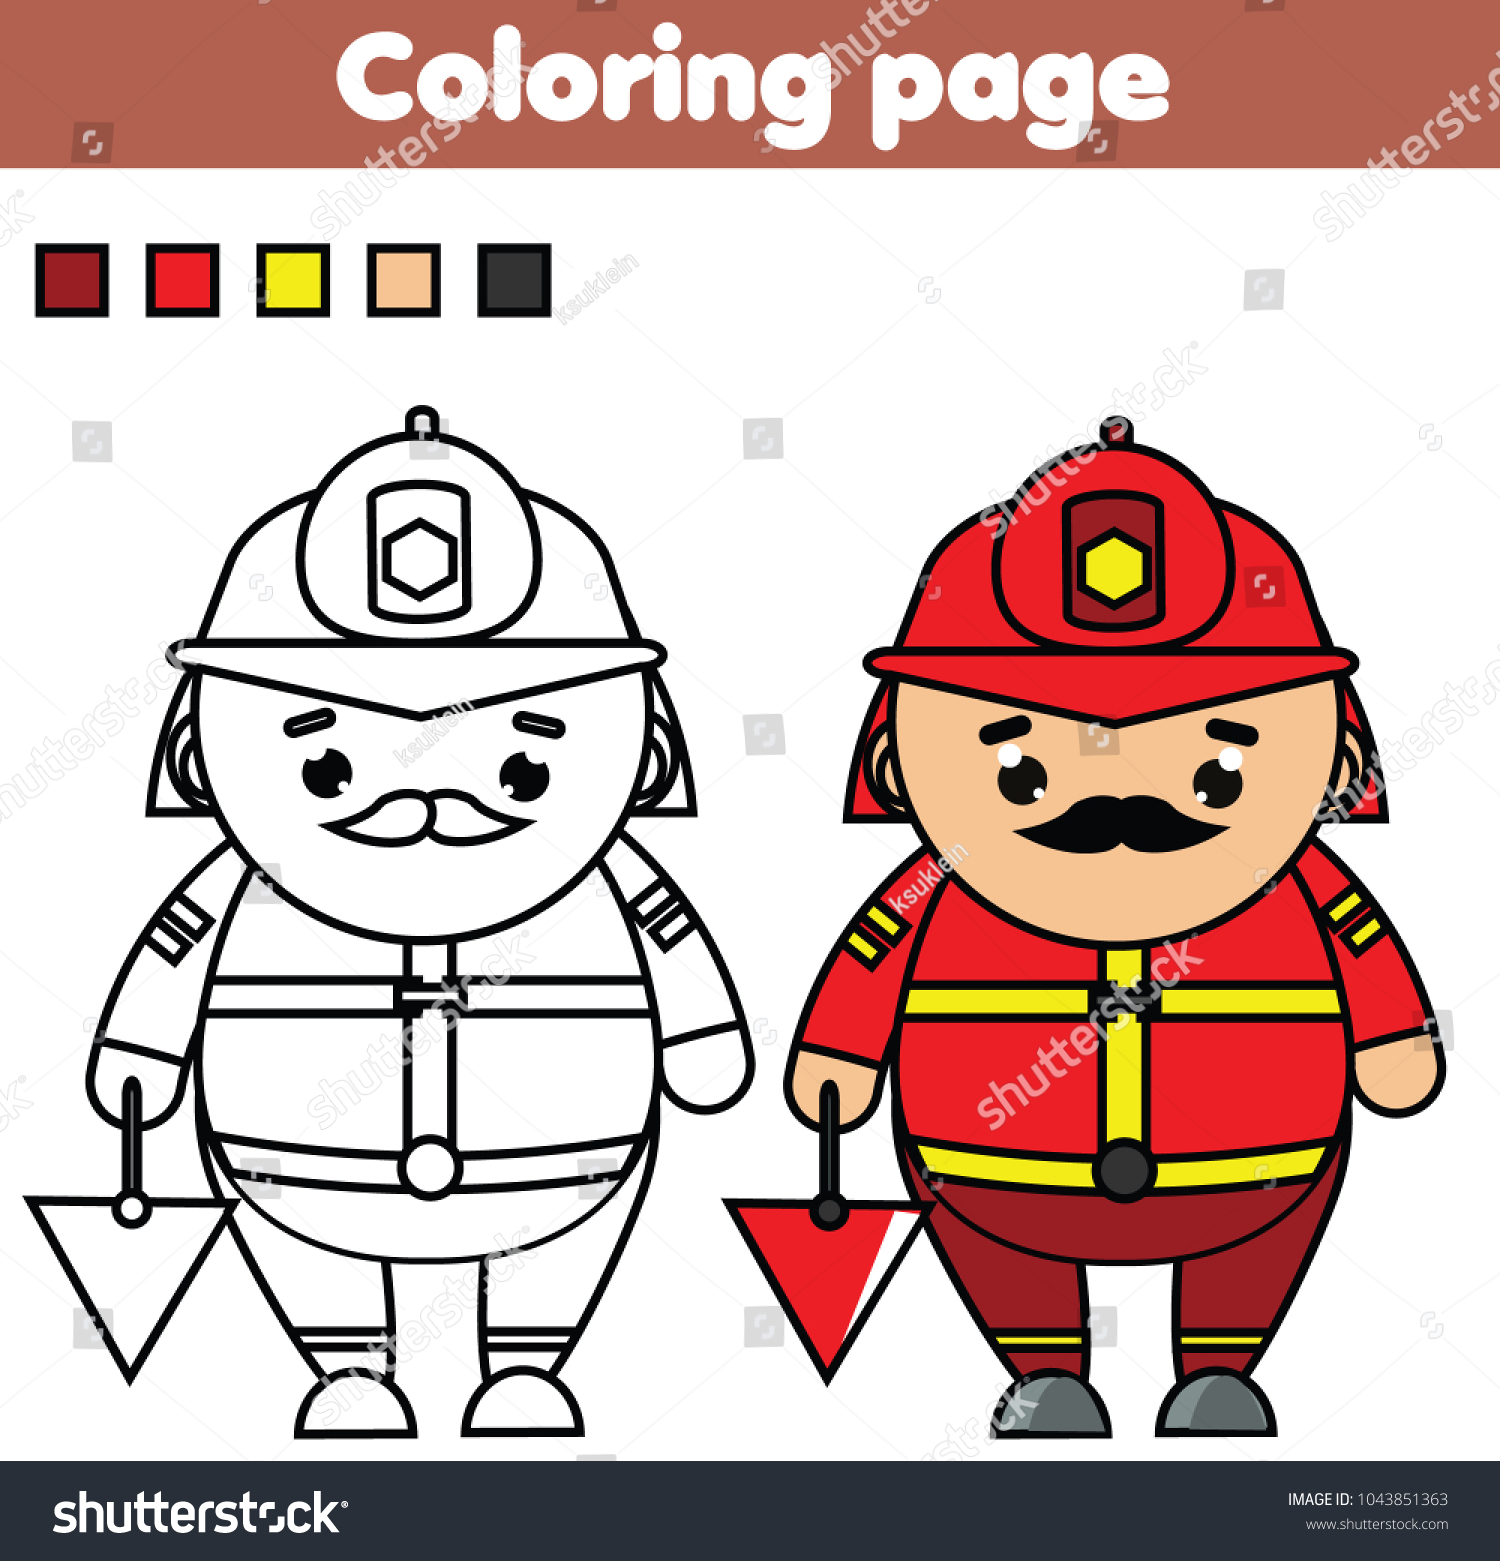 Fireman Coloring Page Color Picture Educational Stock Vector ...